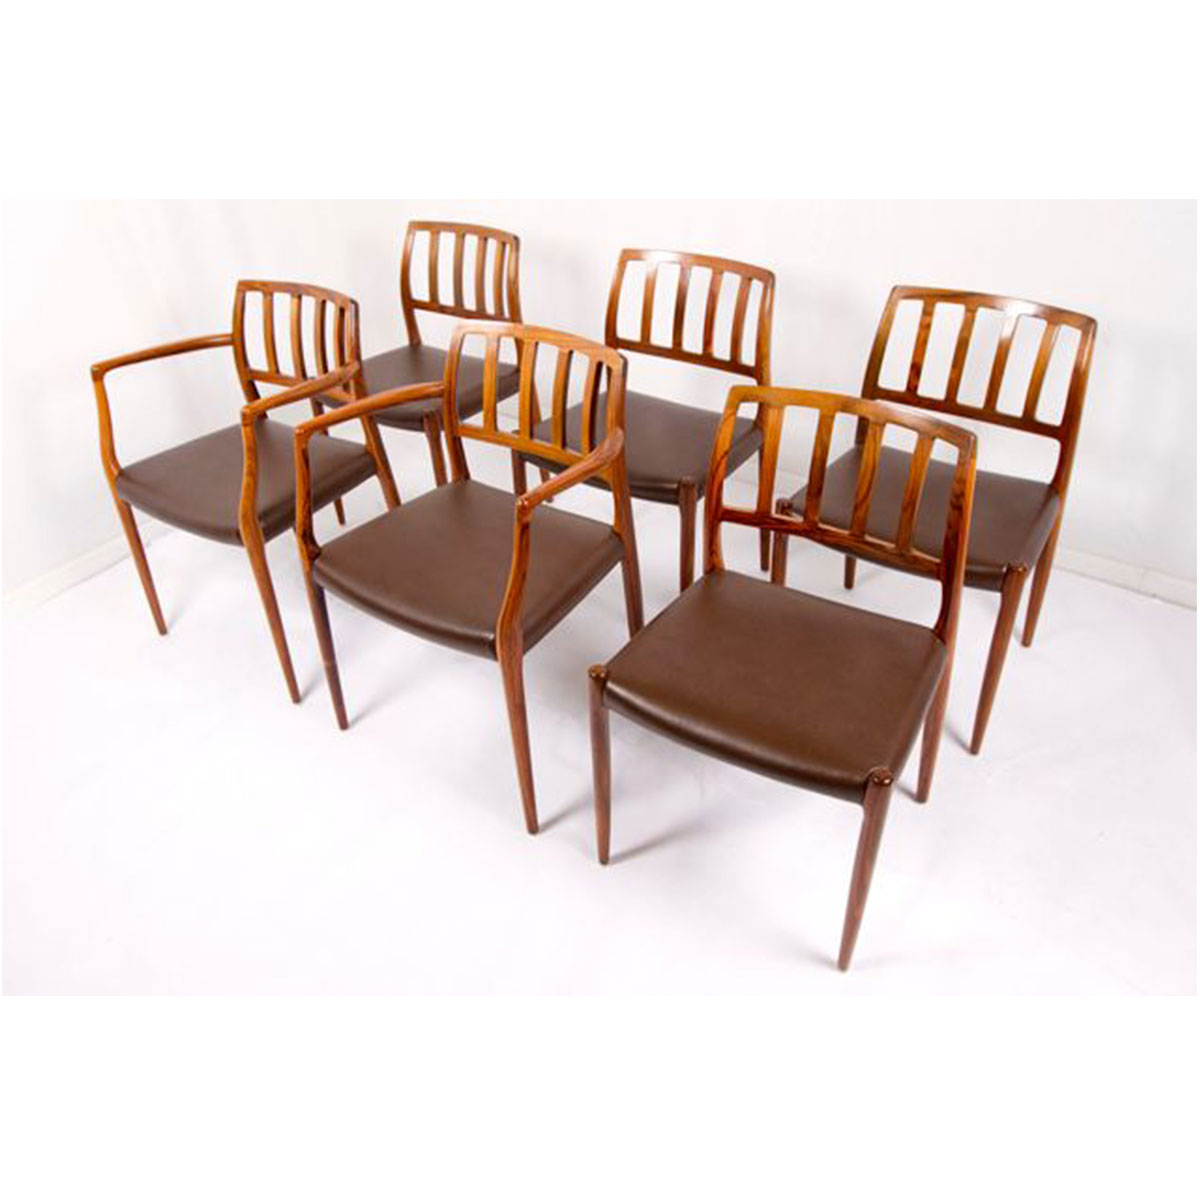 Set of 6 (2 Arm 4 Side) Fabulous Niels Møller Rosewood Dining Chairs w/ New Upholstery!